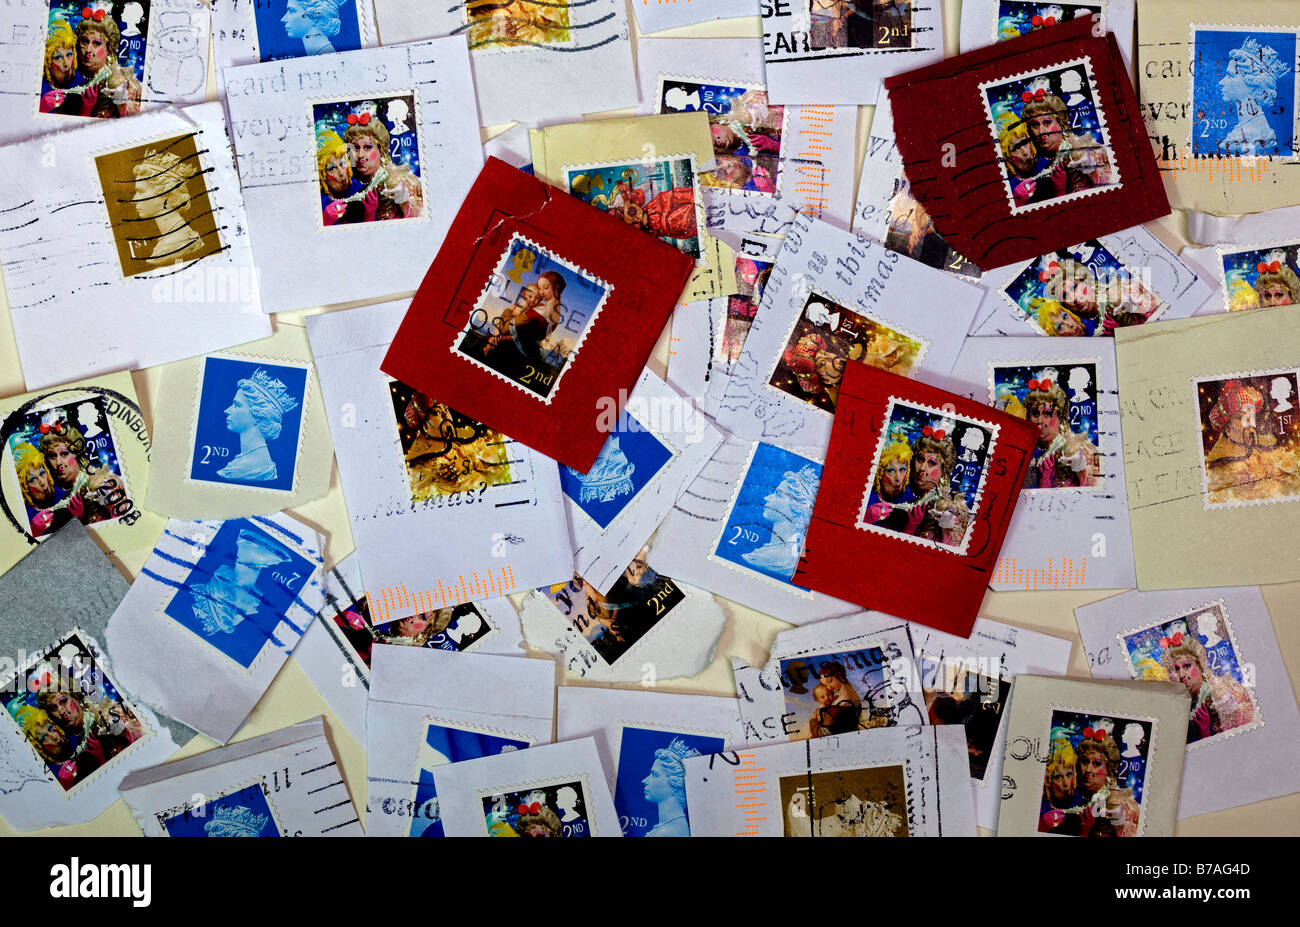 British used postage stamps saved to recycle for charity - Stock Image